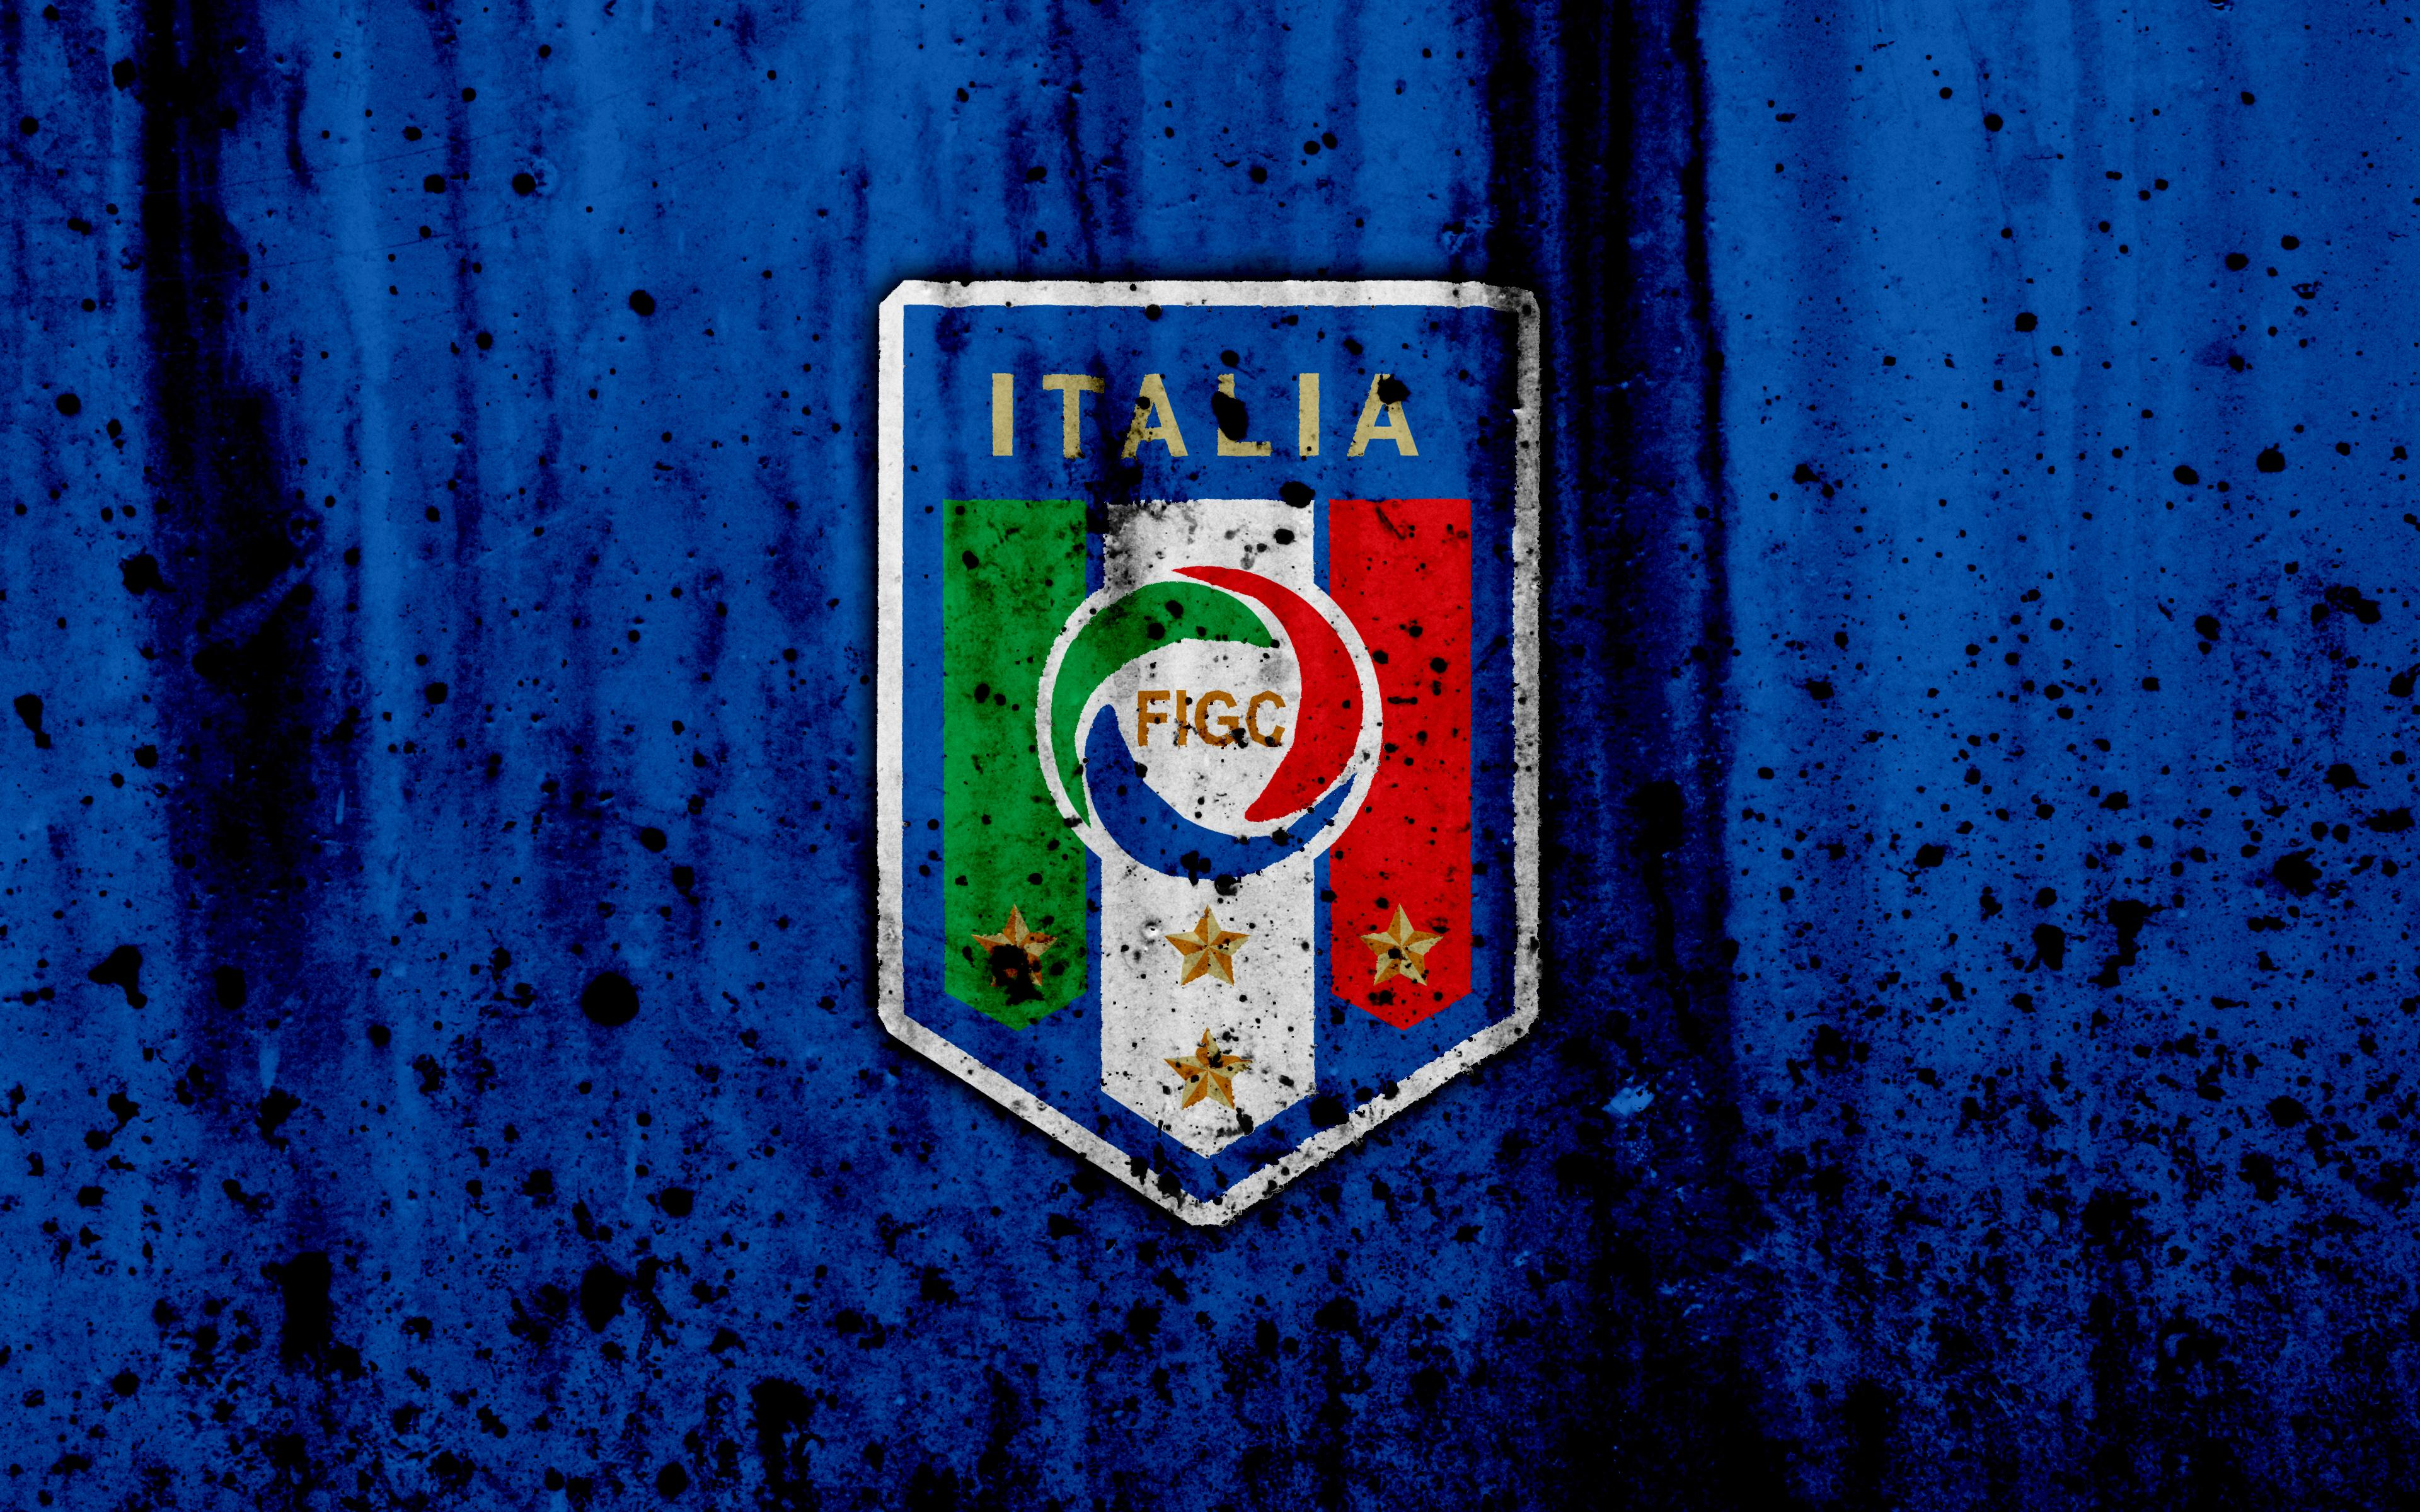 Italy National Football Team 4k Ultra HD Wallpapers